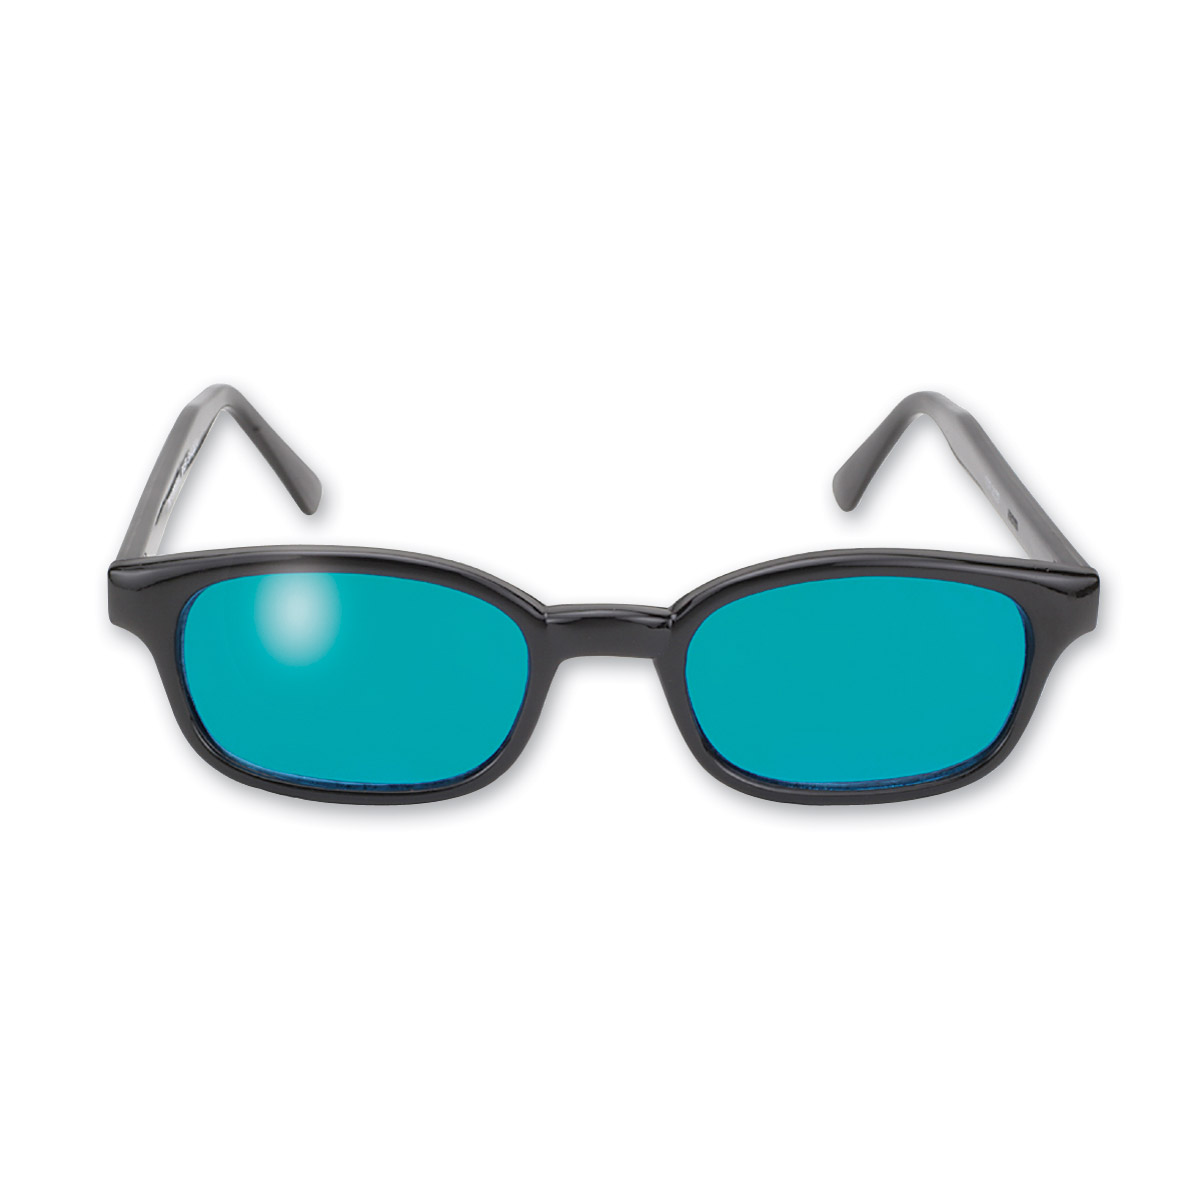 KD's Sunglasses - Black Frame with Turquoise Lens